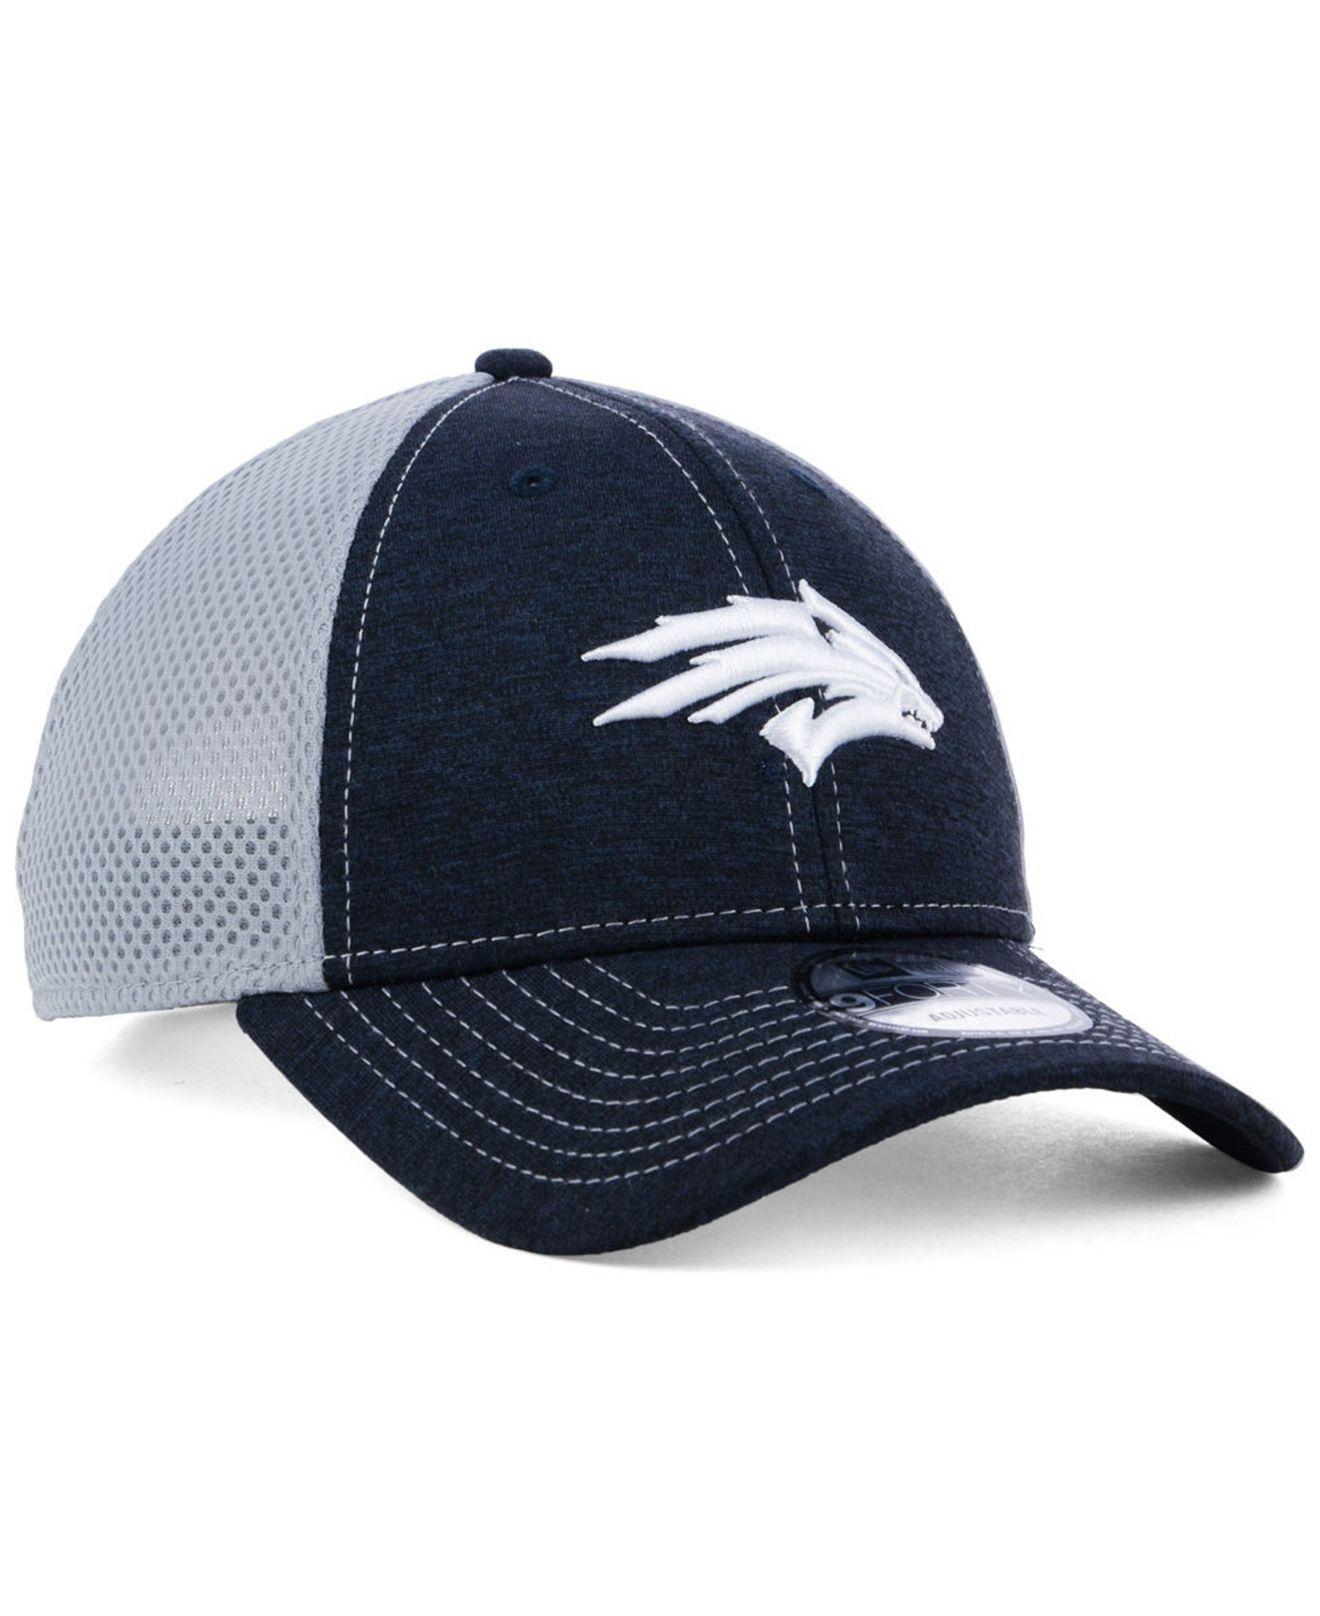 promo code 615c8 8fc39 switzerland lyst ktz nevada wolf pack shadow turn 9forty cap in blue for men  6d2eb 394a2